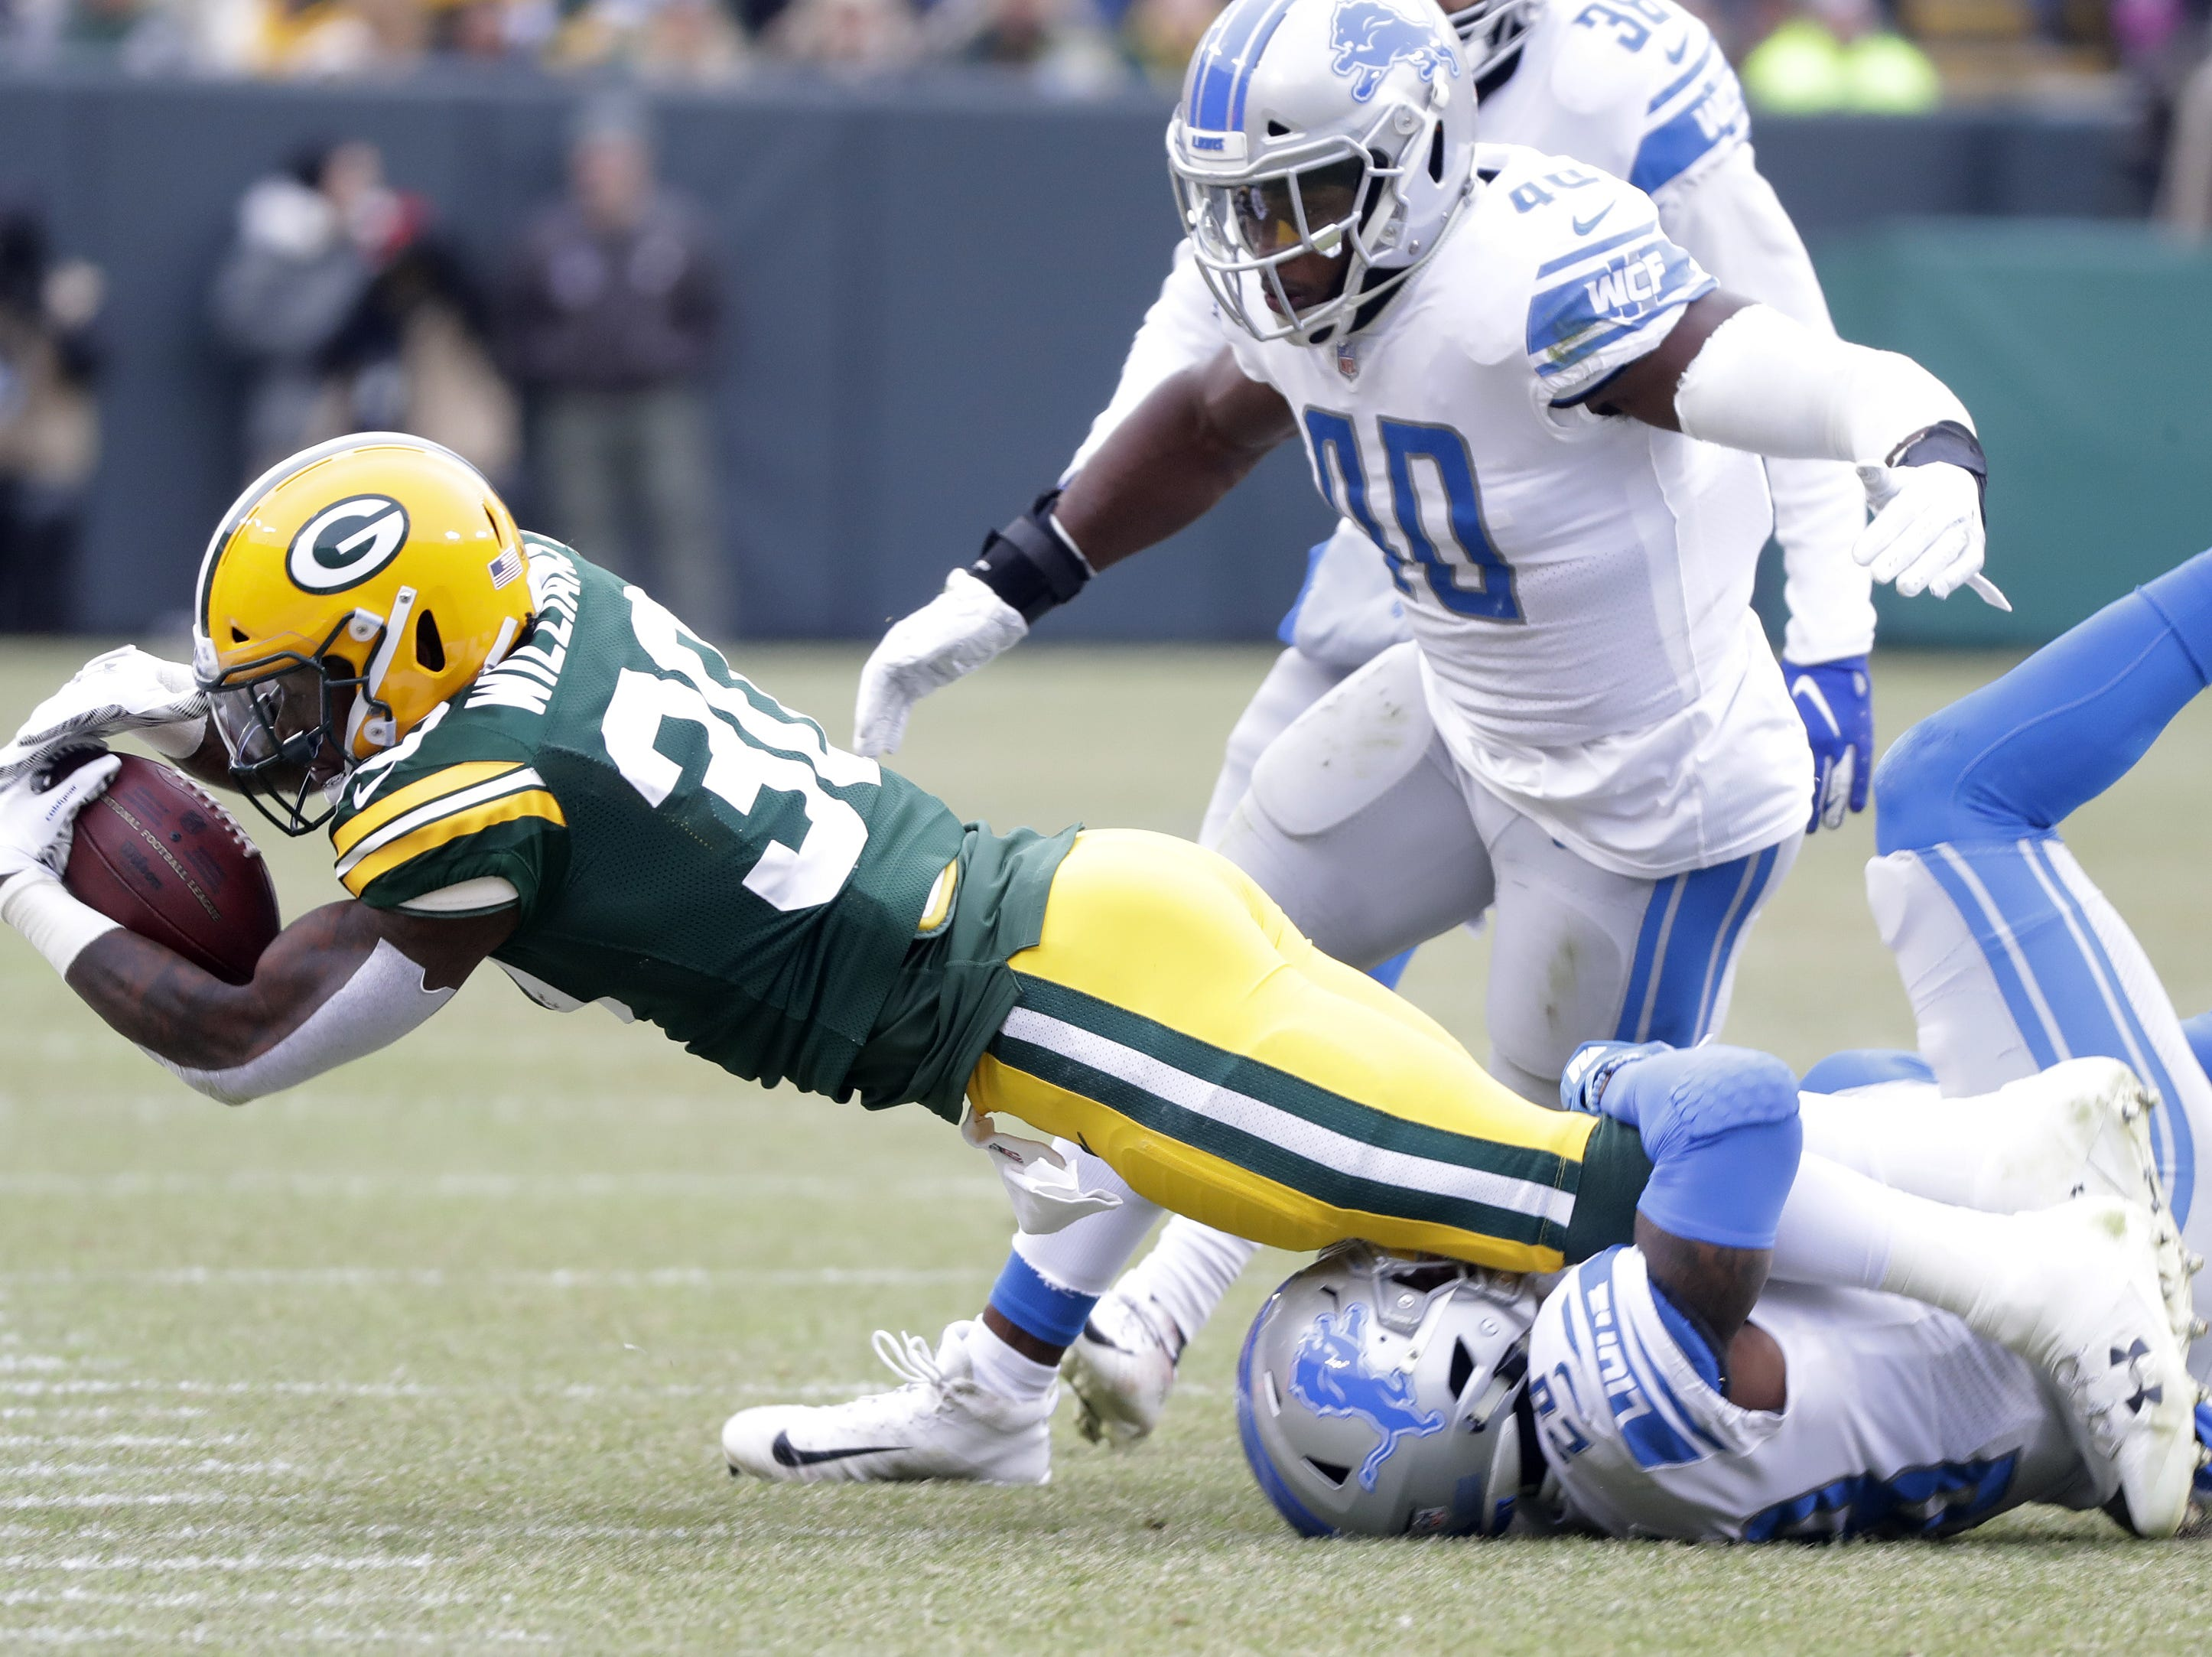 Green Bay Packers running back Jamaal Williams (30) stretches for extra yards in the first quarter against the Detroit Lions at Lambeau Field on Sunday, December 30, 2018 in Green Bay, Wis. Adam Wesley/USA TODAY NETWORK-Wis